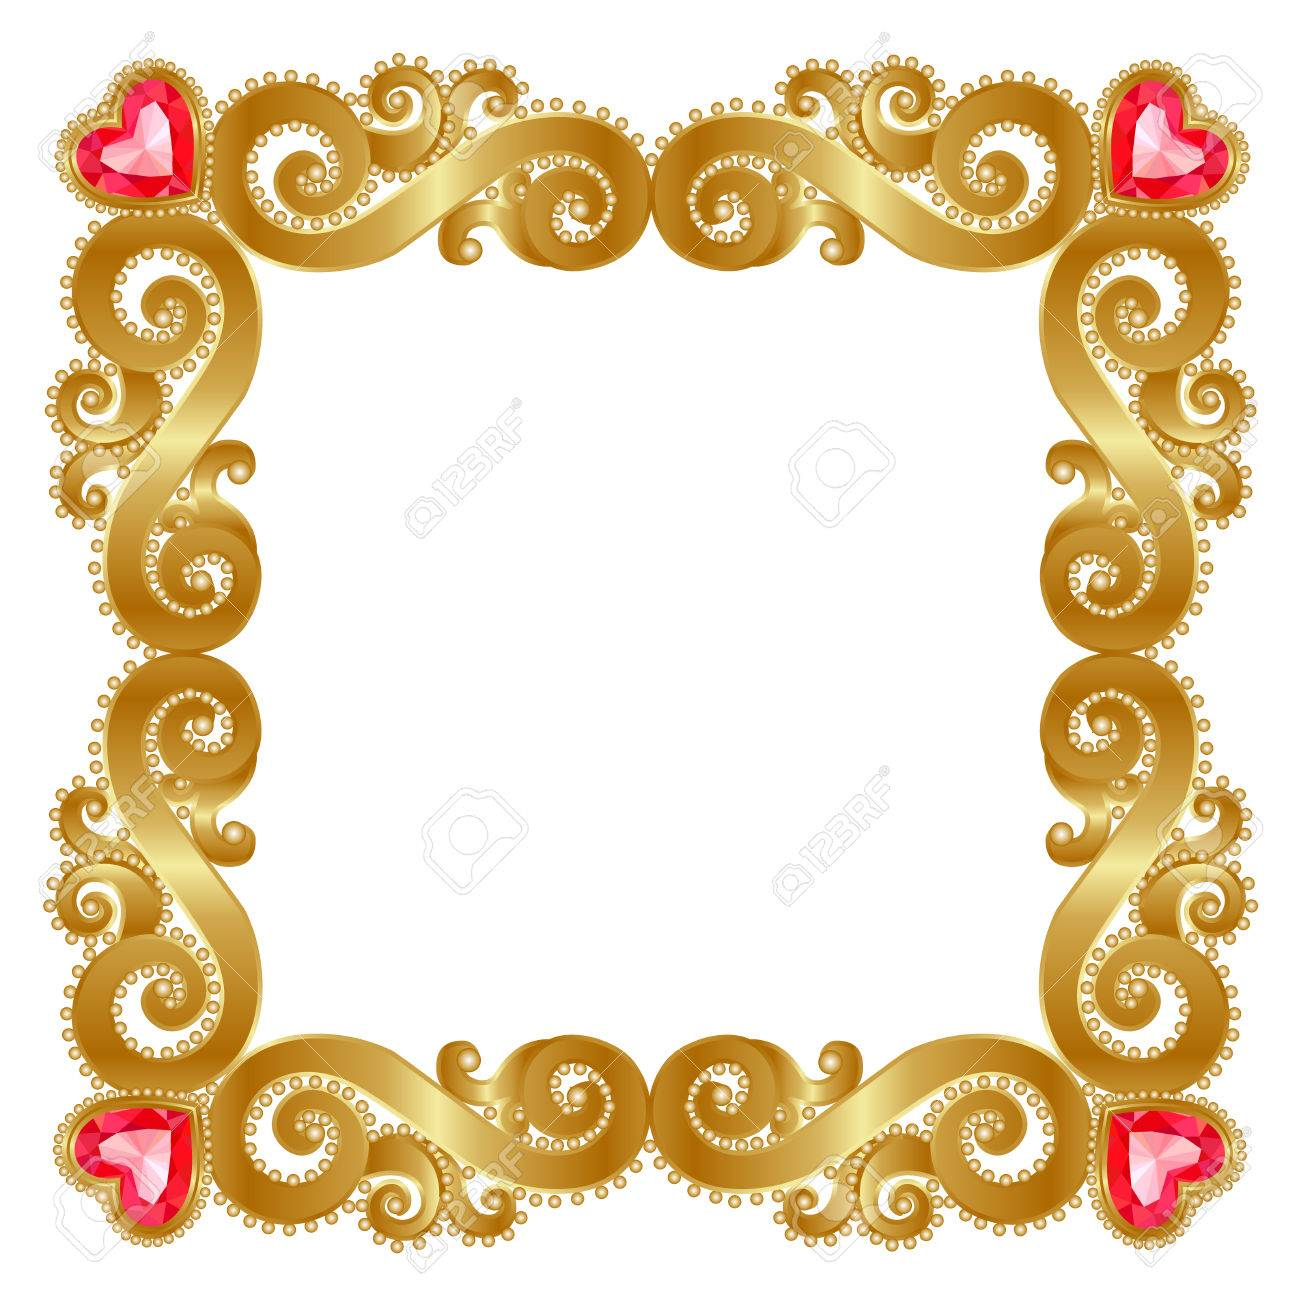 fba19cde006 Delicate gold frame with ruby hearts on a white background Stock Vector -  41956987